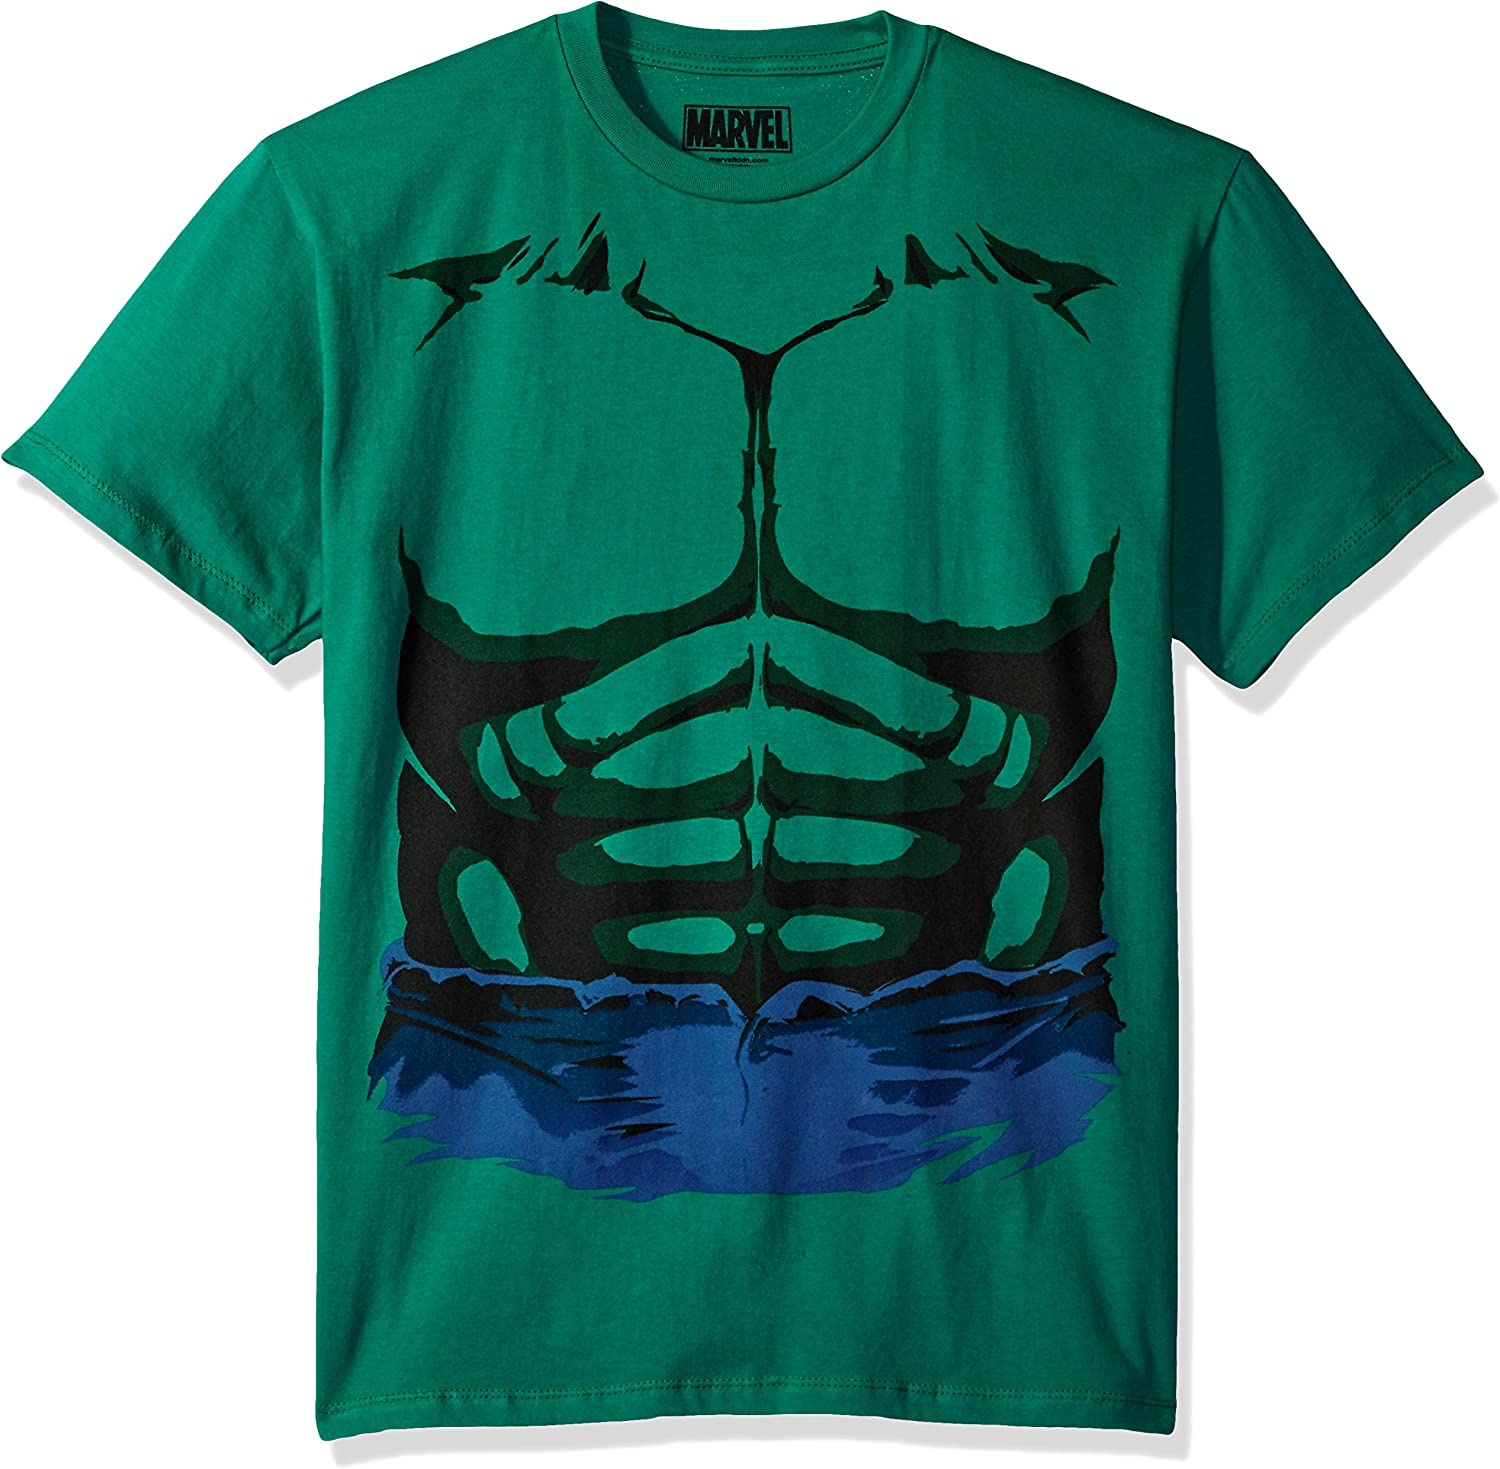 Marvel Boys Hulk T-Shirt